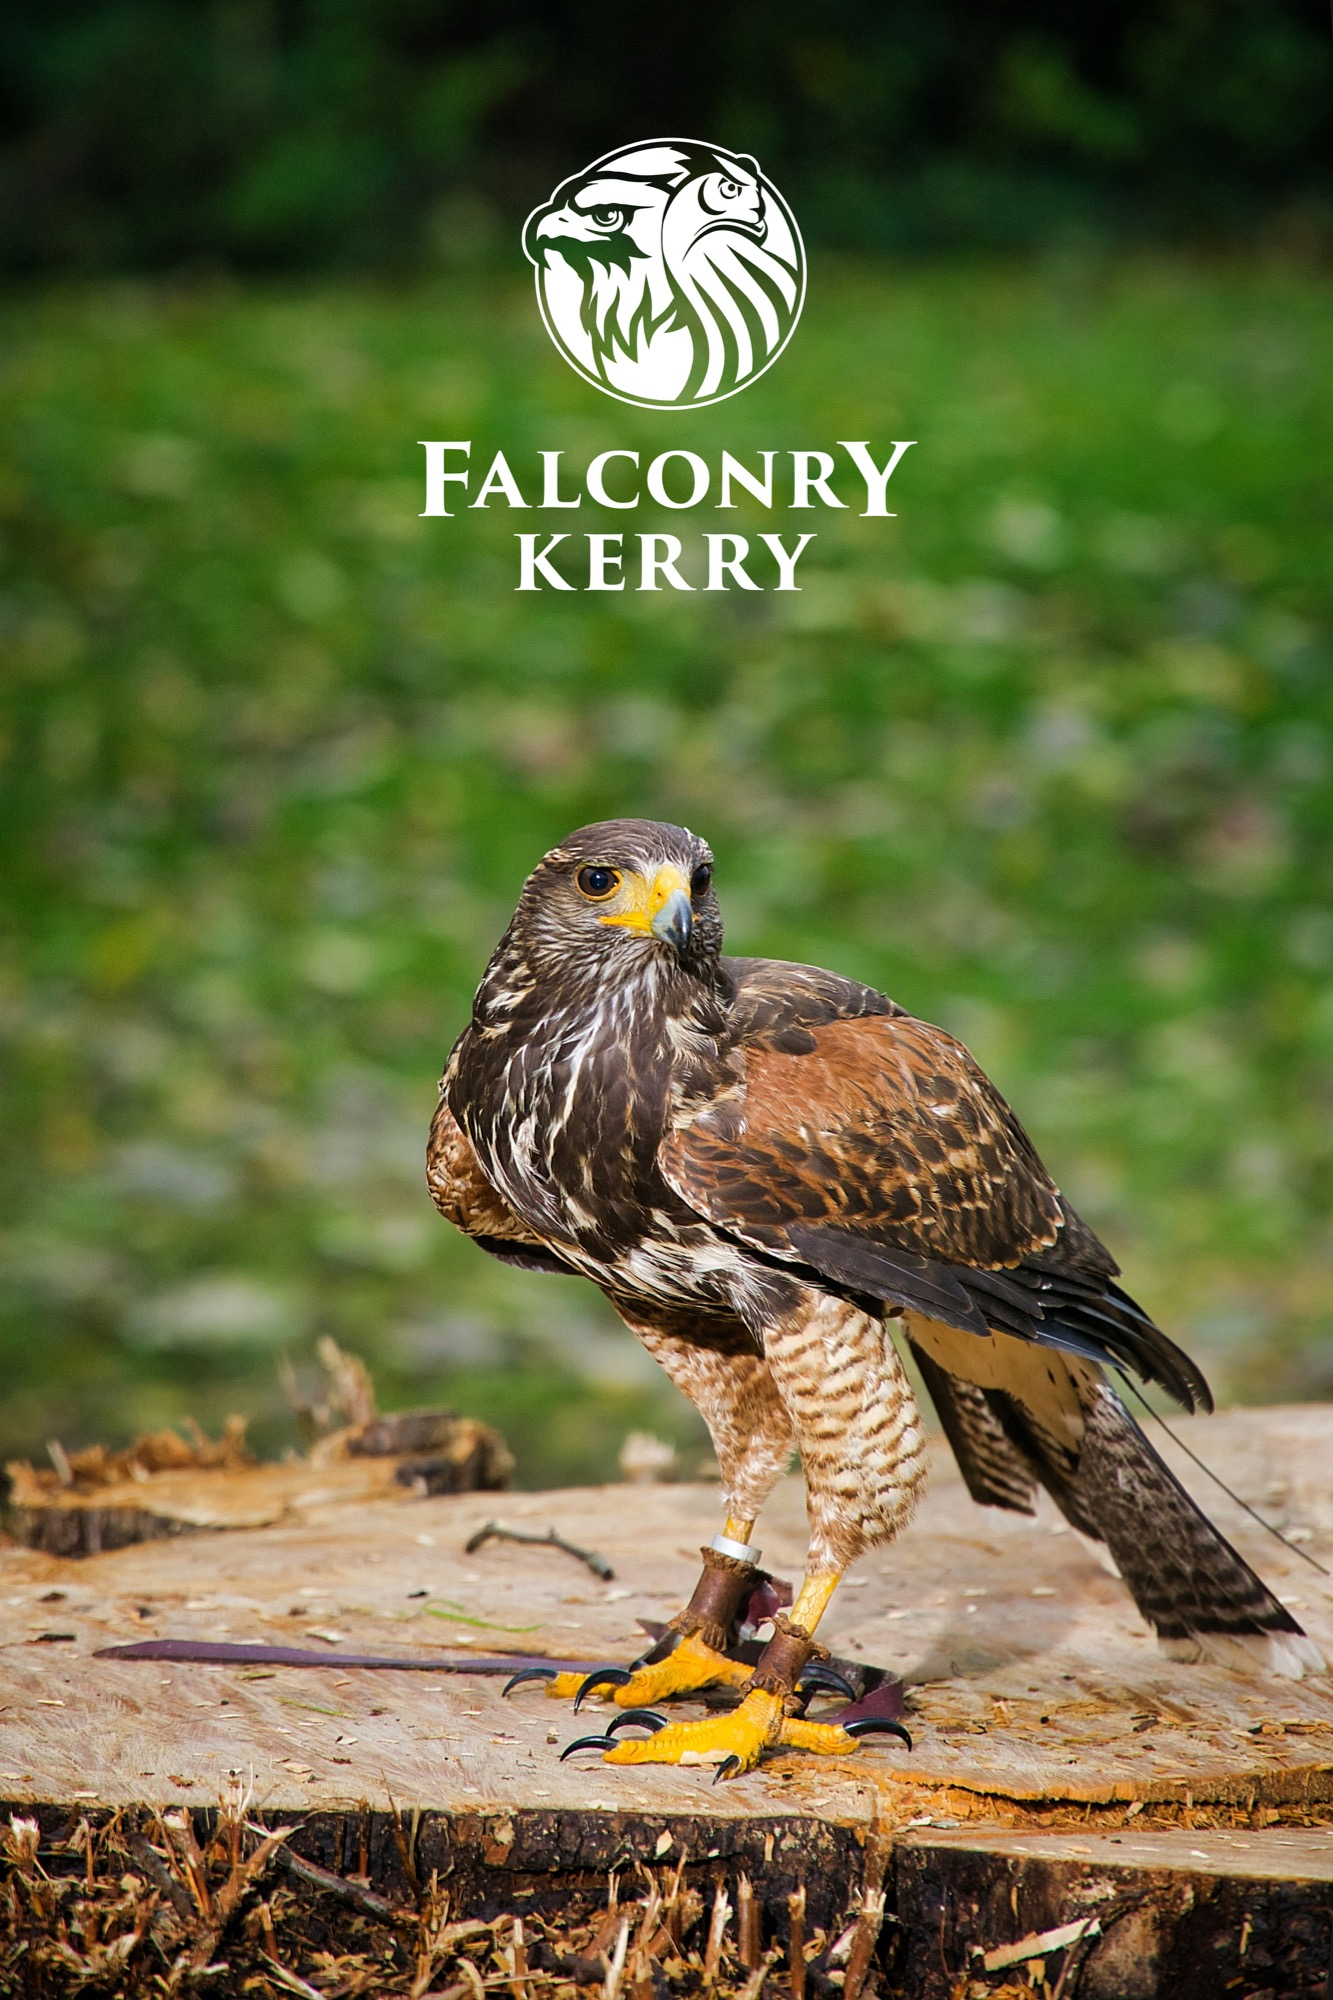 "- Come visit us for an exclusive falconry experience here in Killarney. Why not seize your opportunity to take part in ""the sport of kings"". This experience will open a whole new world into an ancient art, thought to be over 4000 years old.Falconry Kerry is located in Killarney, Co. Kerry. Based less than 2 miles from Killarney town centre. At Falconry Kerry, we keep several varieties of birds of prey including hawks, falcons and owls, with many species of each. All of these birds are captive reared and can only be owned by a licensed falconer.Traditionally, Falconry was practiced solely for hunting to catch food. While our birds do hunt, a hawk walk or falconry experience is more about experiencing the indescribable, while interacting with these majestic birds.At Falconry Kerry, you will be entertained and hopefully also educated about birds of prey all over the world, their importance in the ecosystem here in Killarney, and also throughout history, hunting together with humans.Call us or send an email to arrange an appointment, where you get a personal encounter with some of our birds. We fly our birds on a working, traditional Irish farm.Our Premises is not open to the public, private hawk walks/displays are arranged by contacting us to make an appointment."